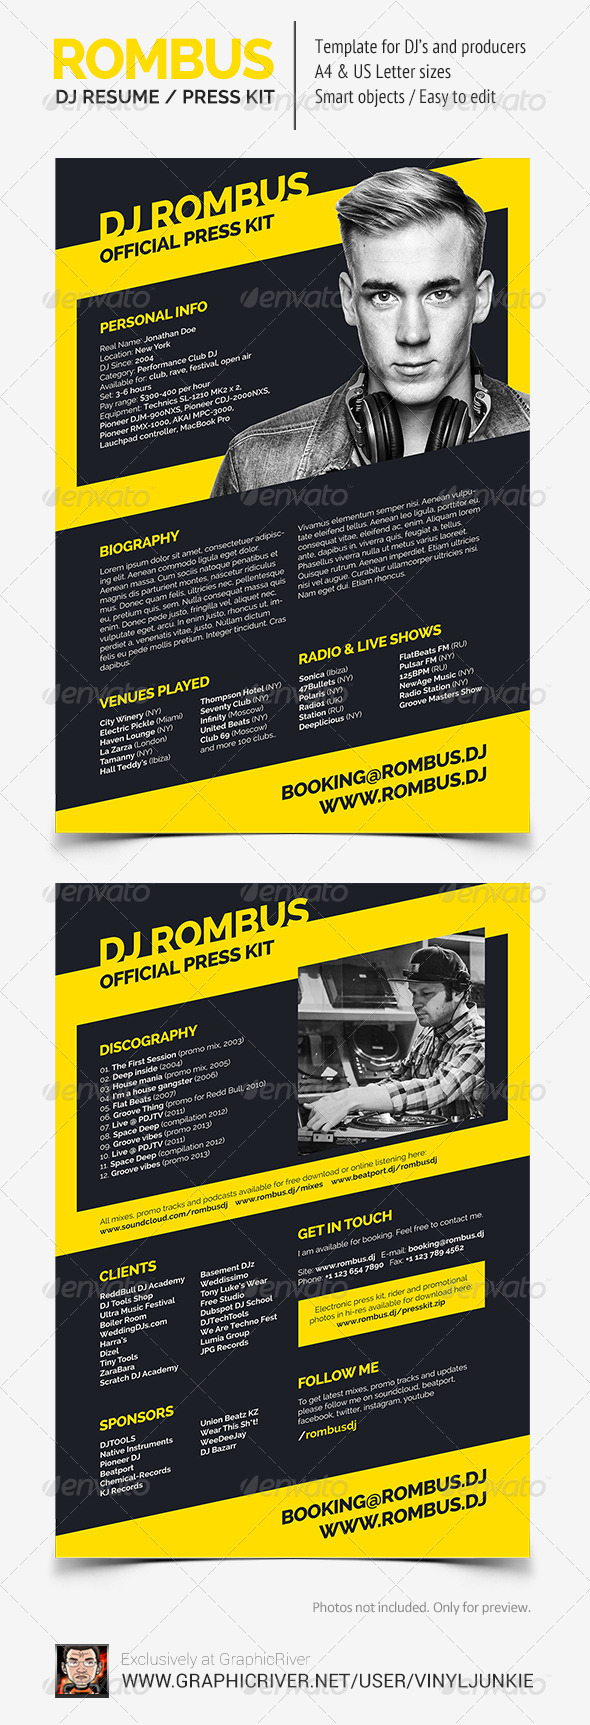 dj press kit template free rombus dj resume press kit psd template by vinyljunkie